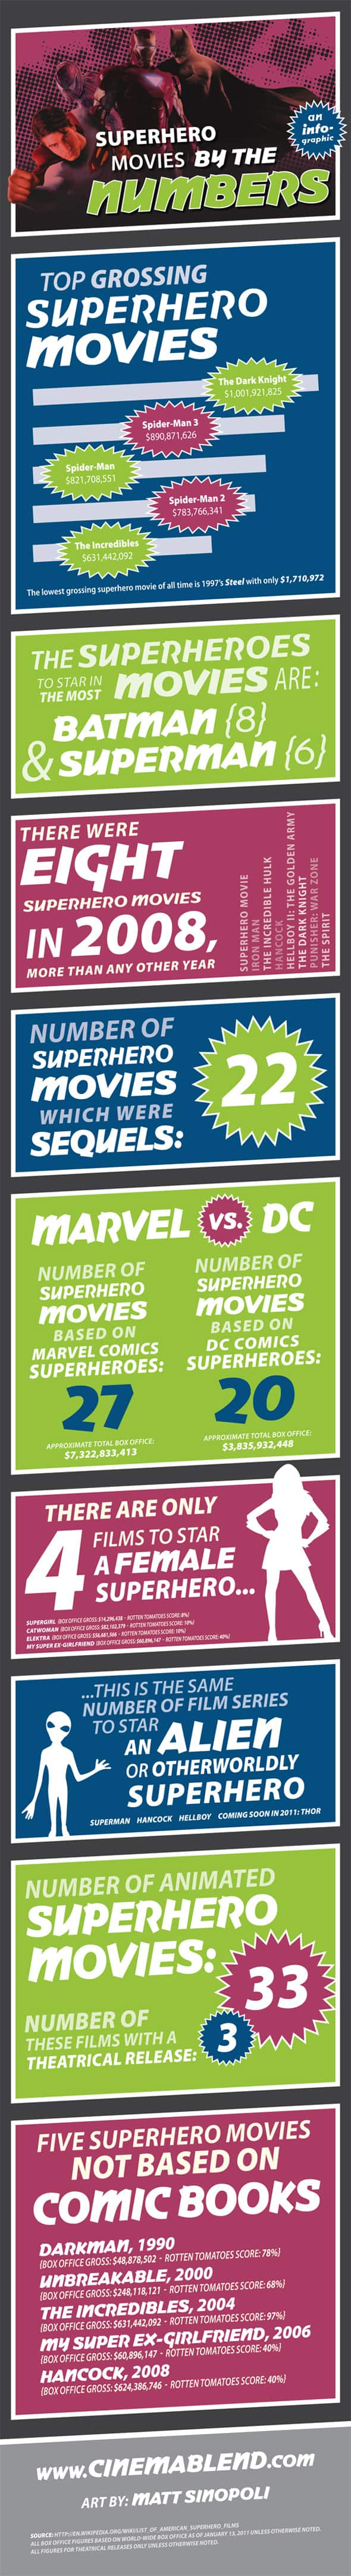 superheroes movies infographic